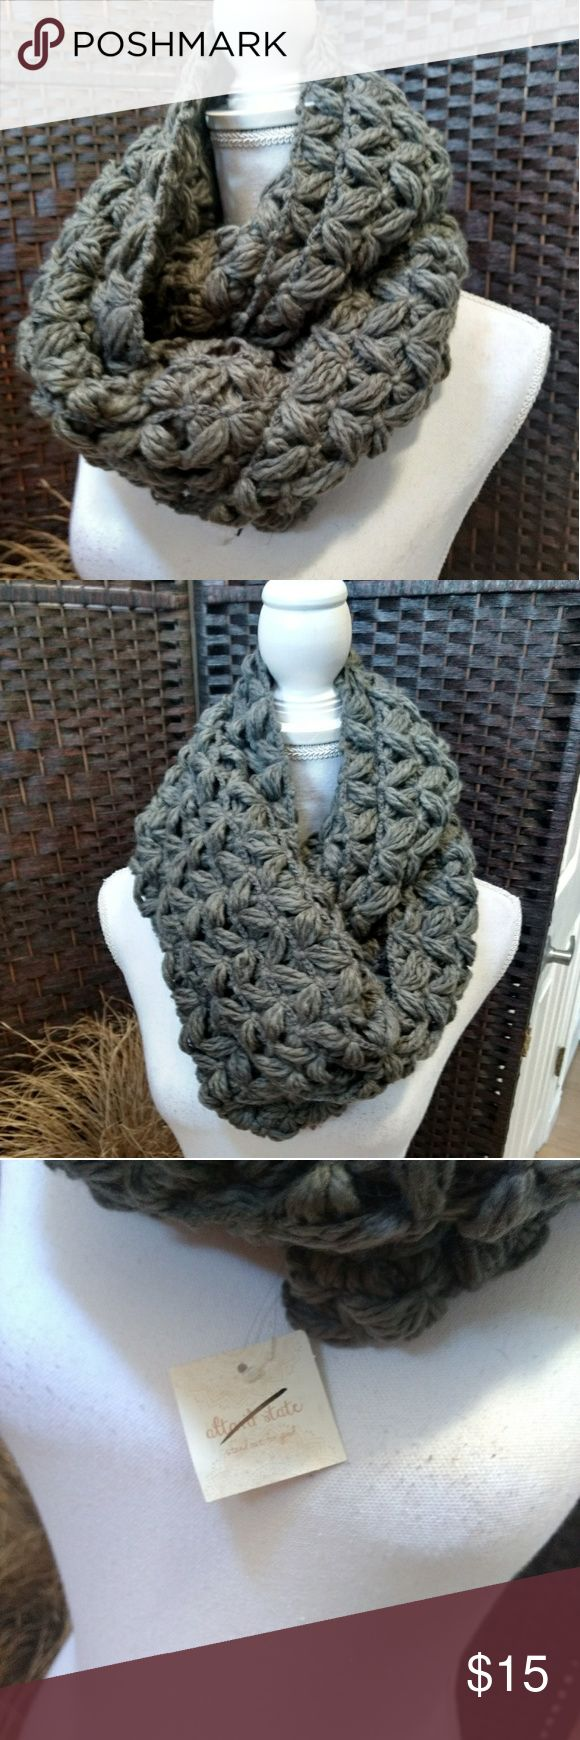 New altared States gray infinity scarf This beautiful grey chunky infinity scarf is a must have for the winter wardrobe. It's new with tags. Altar'd State Accessories Scarves & Wraps